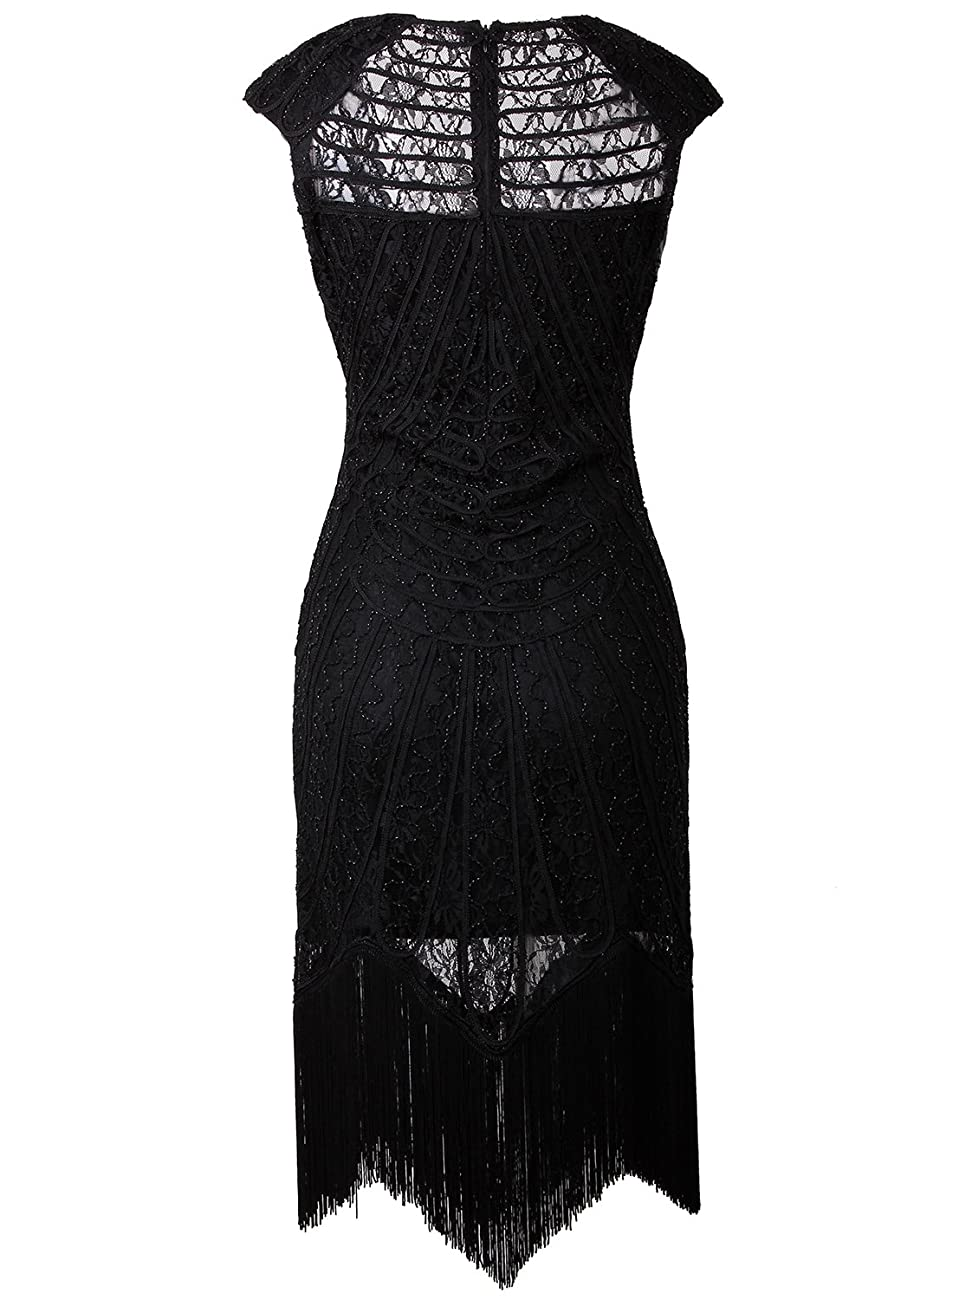 Vijiv Vintage 1920s Inspired Embellished Beaded Lace Cocktail Flapper Dress 2